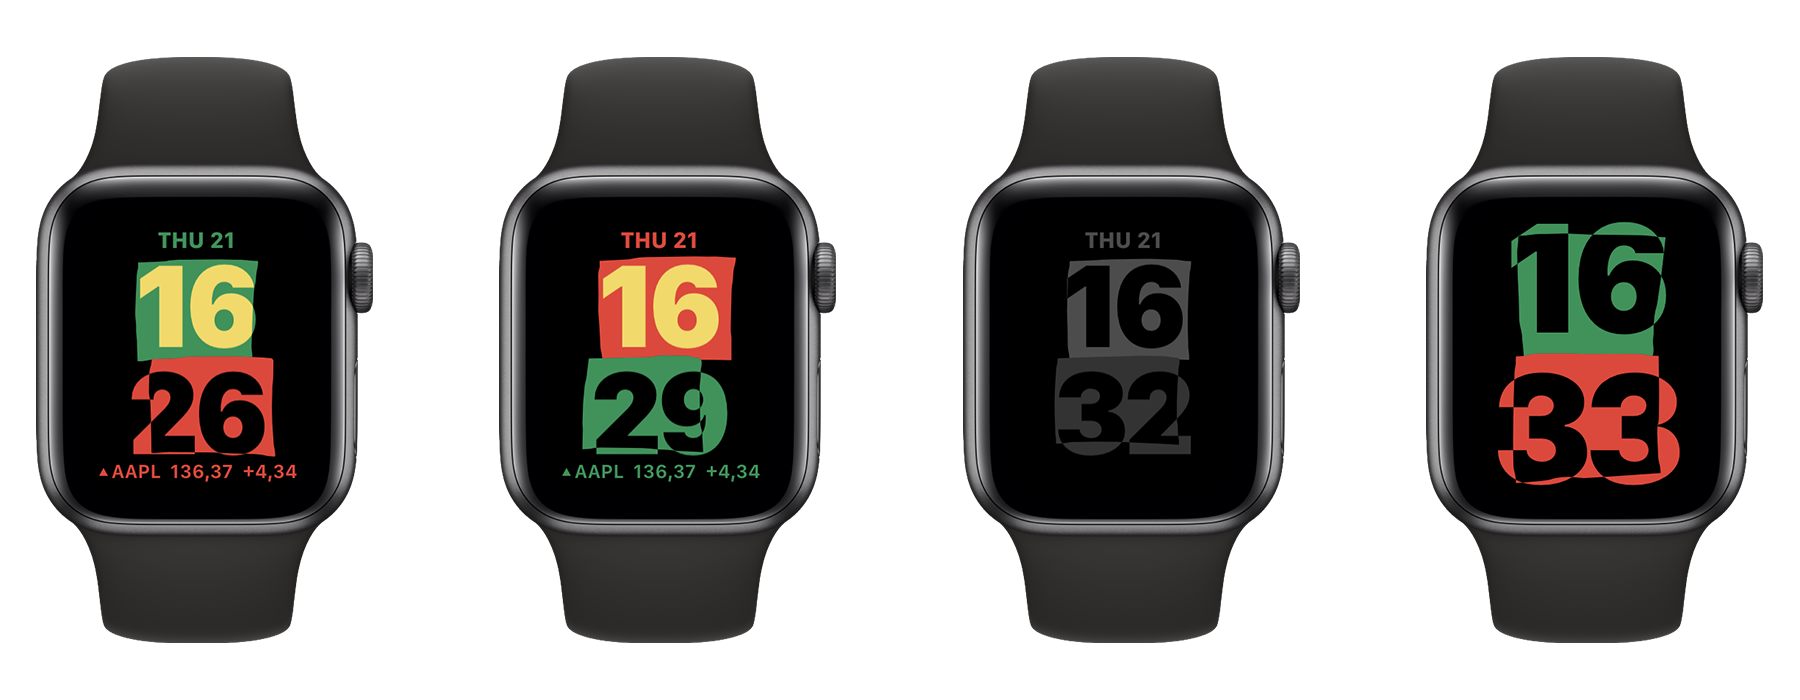 Gallery: Here's a first look at the new watchOS 7.3 'Unity' watch face - 9to5Mac